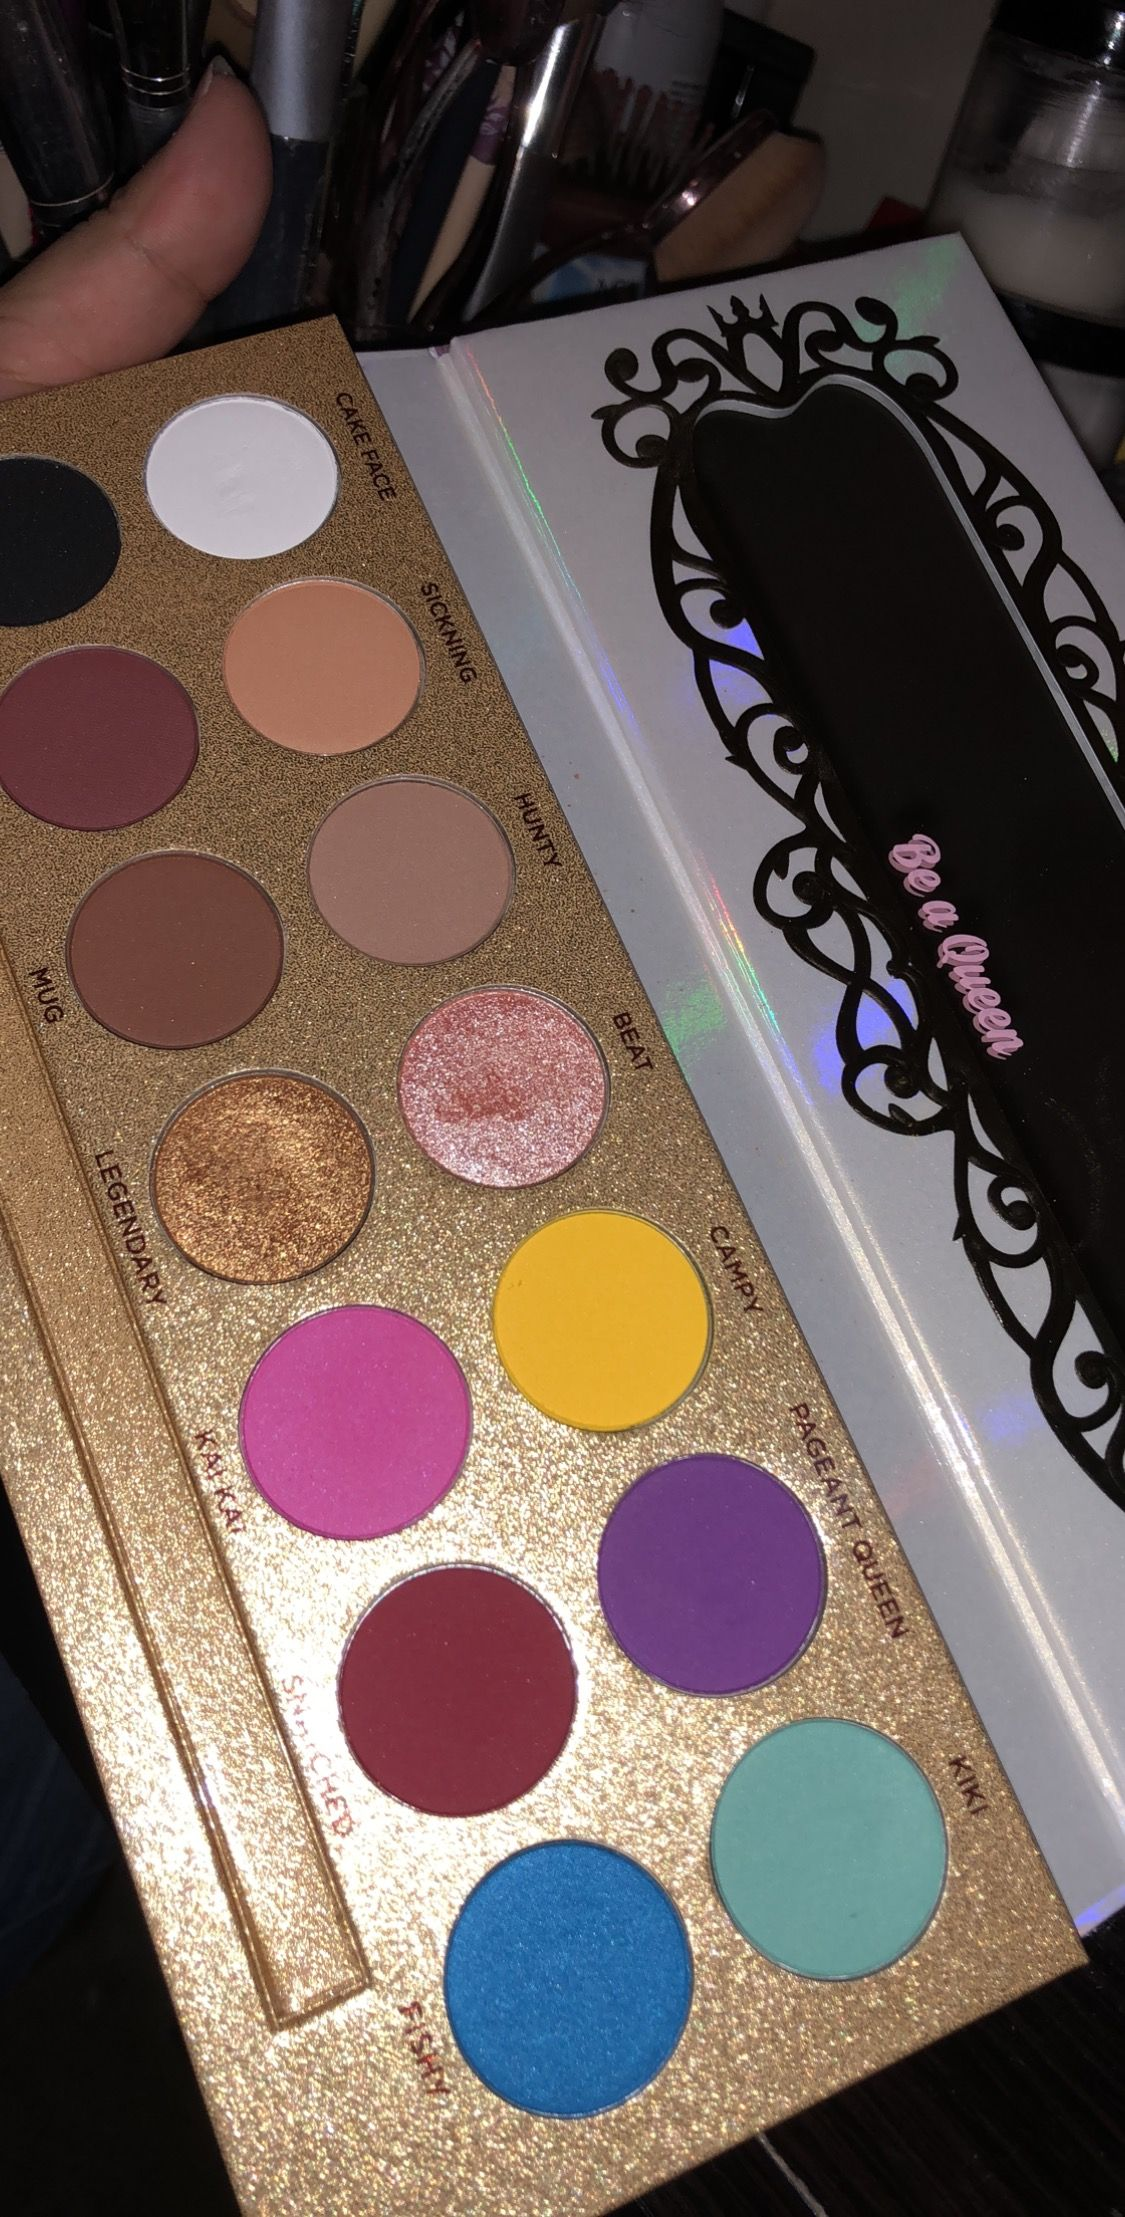 Life's A Drag Eyeshadow Palette by Lunar Beauty #11